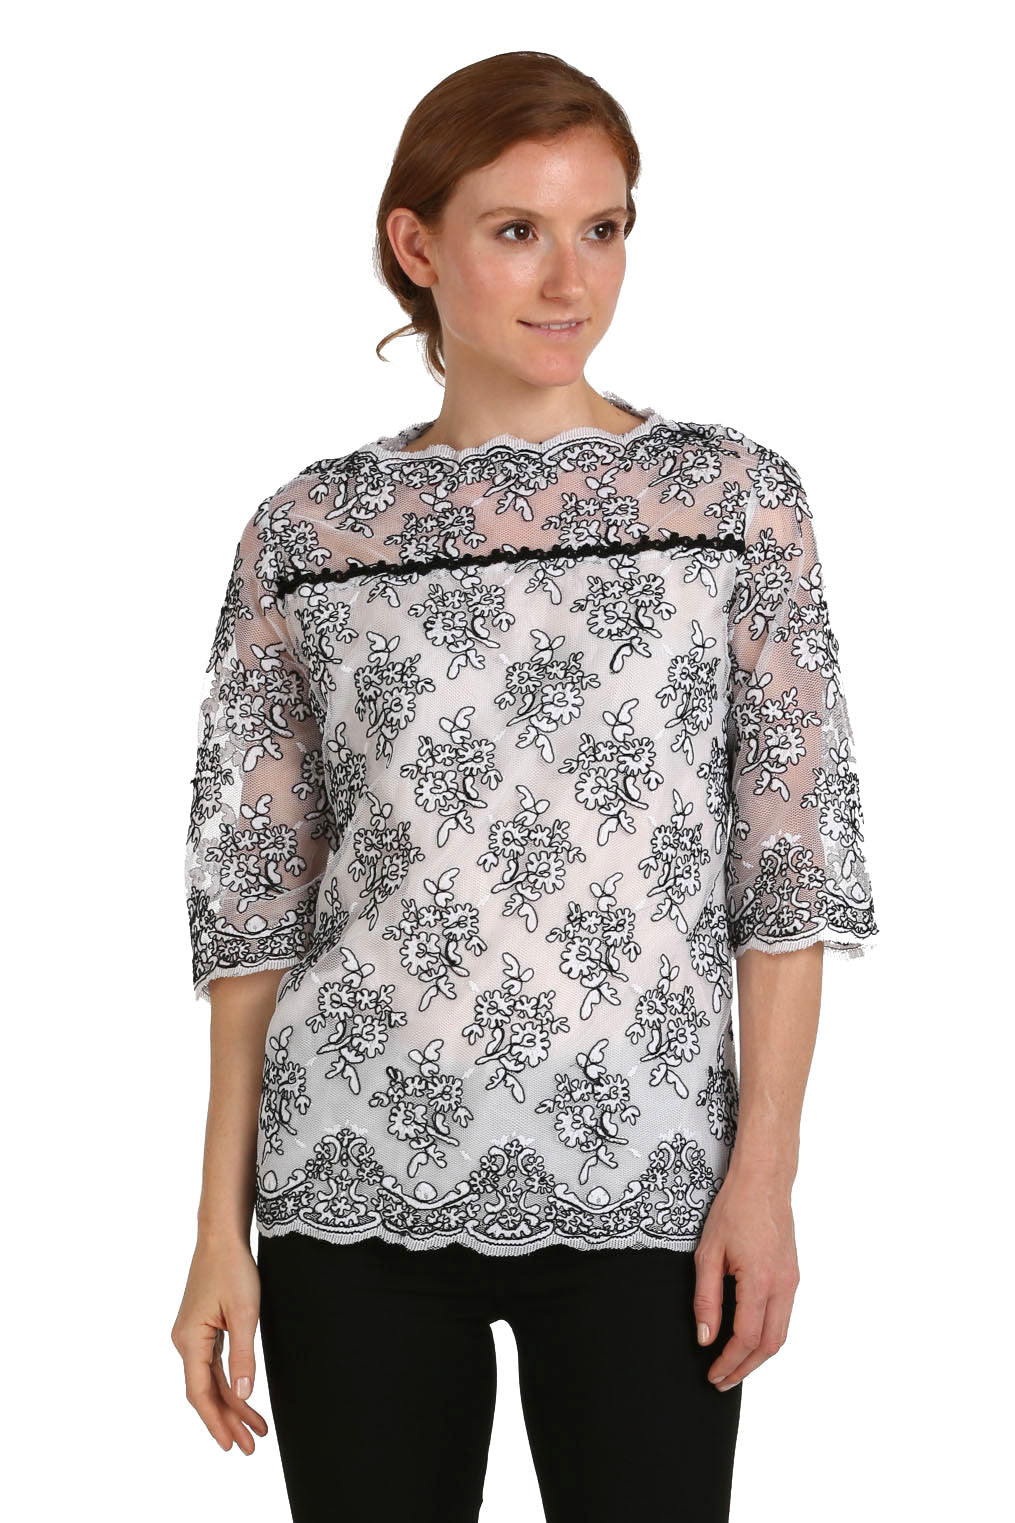 White Lace Blouse with Black Trim